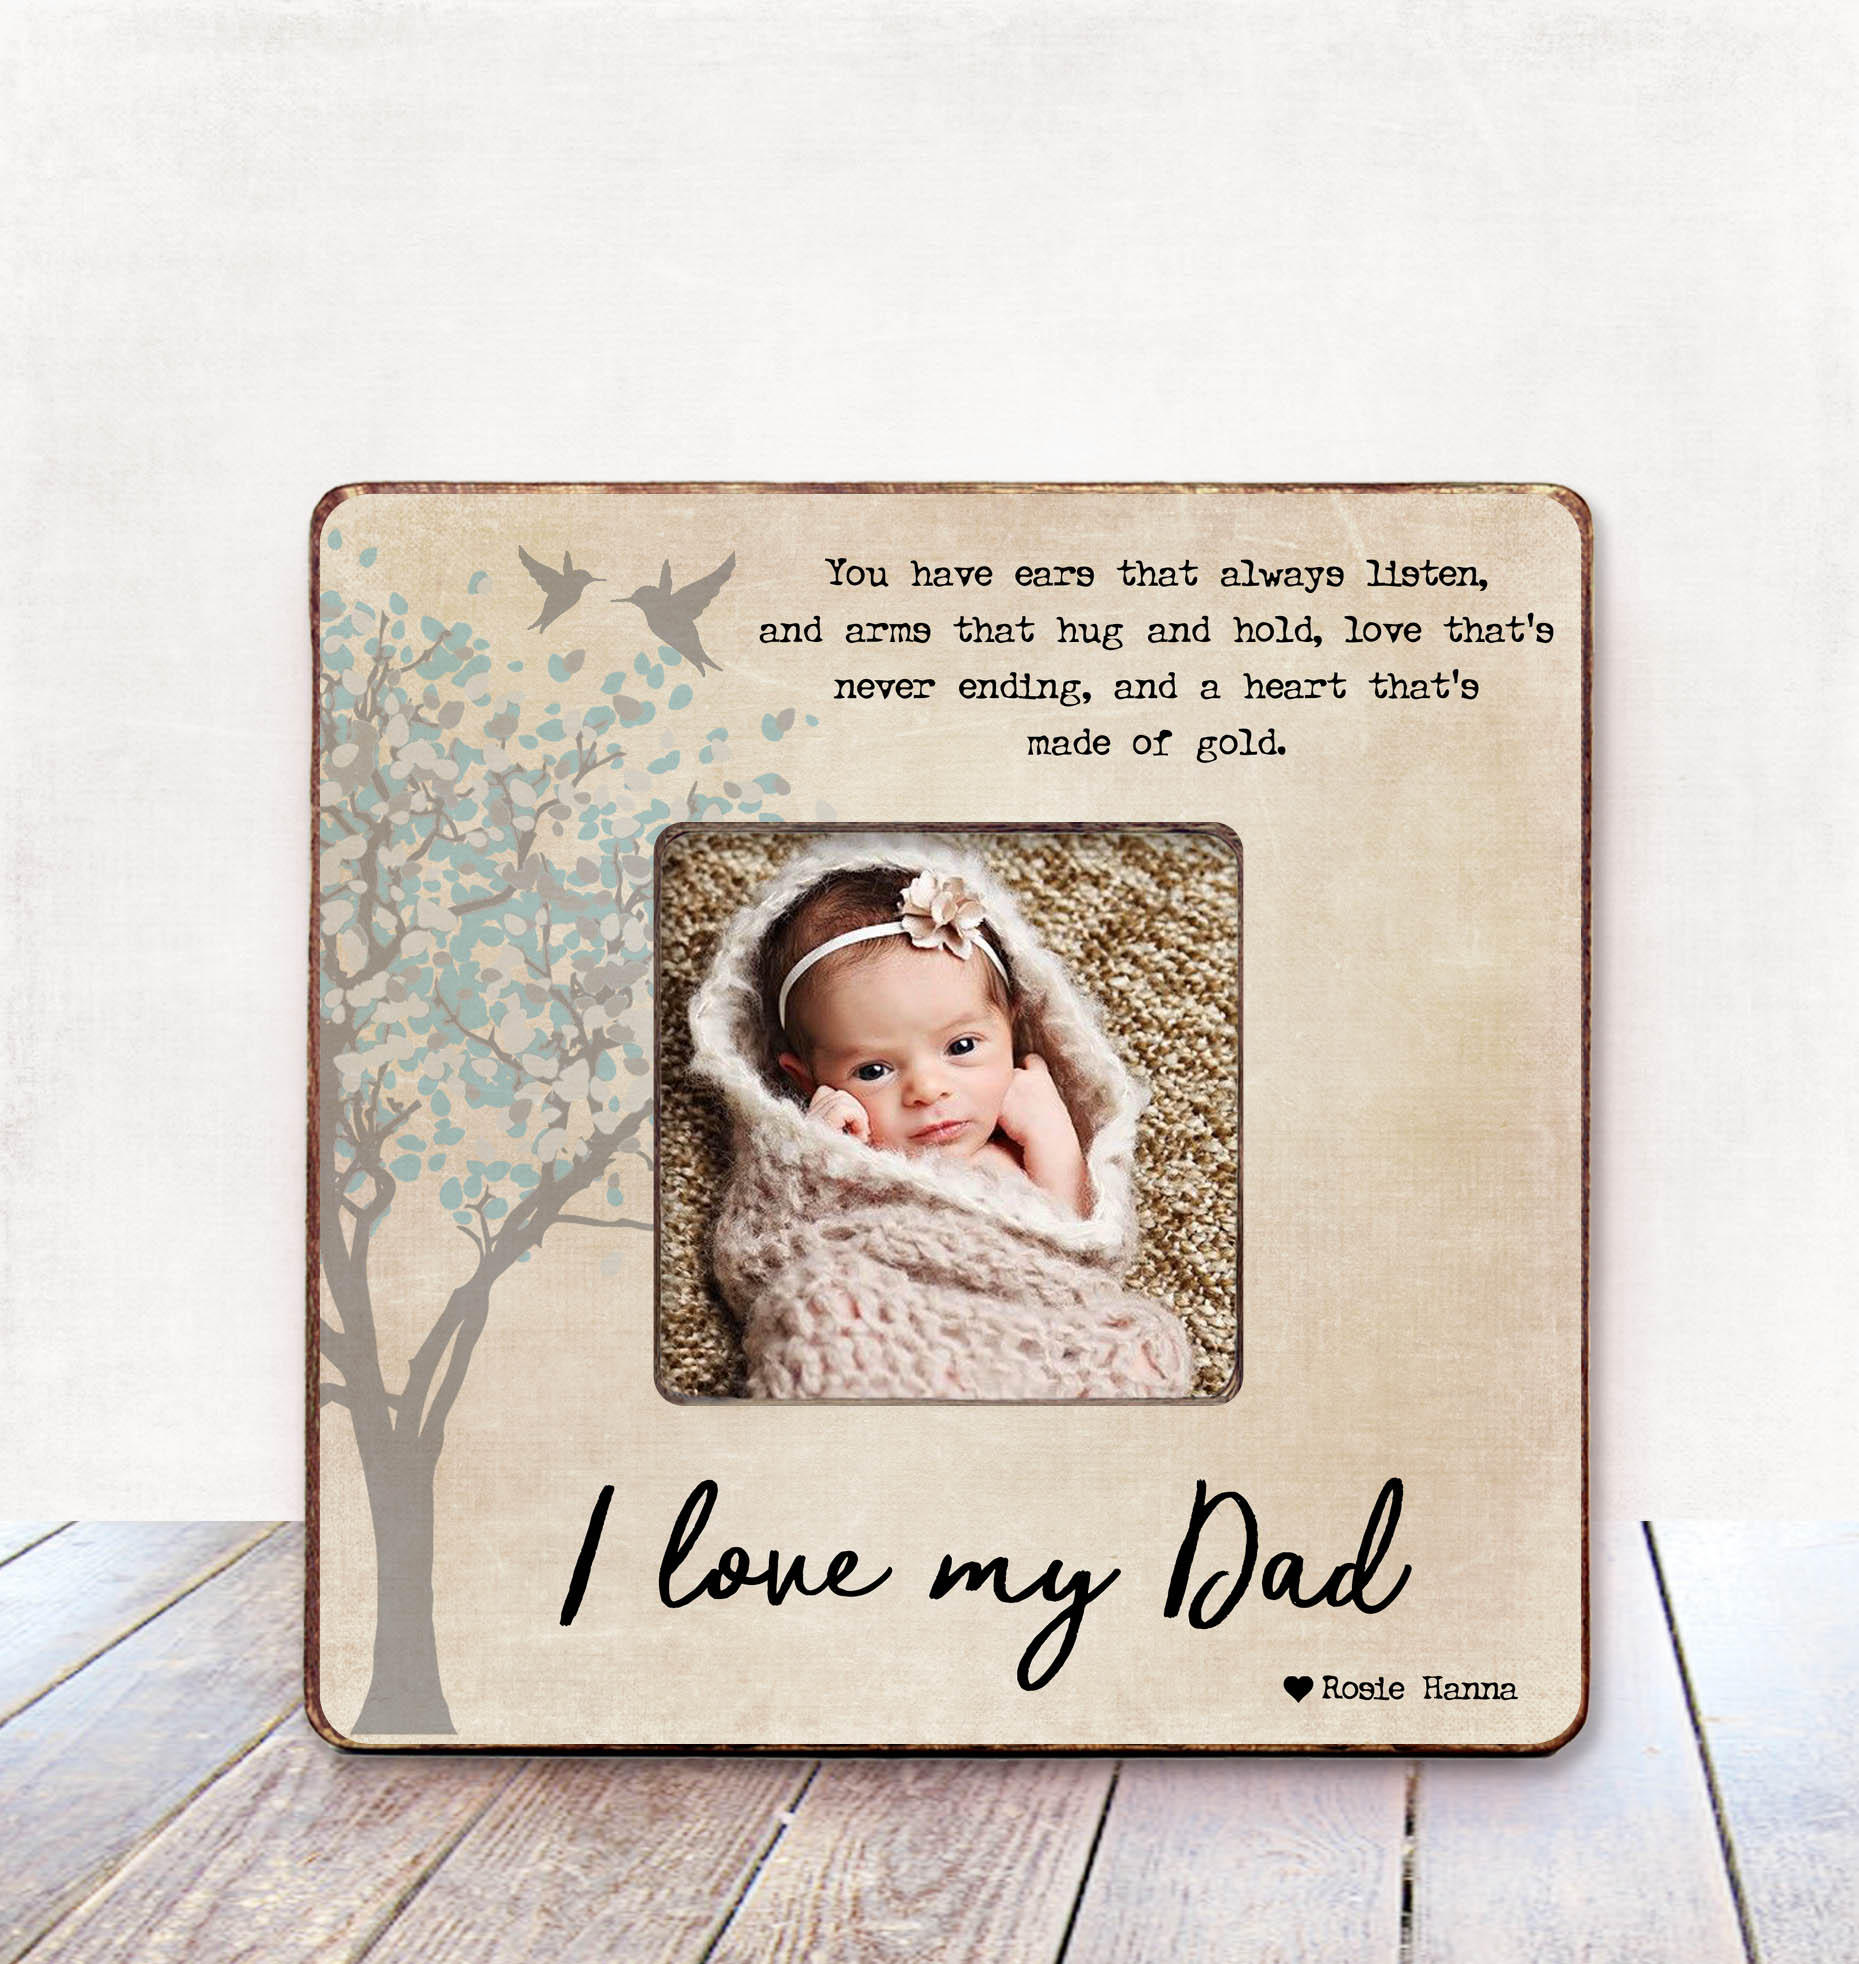 I love my Dad Picture Frame for Dad Gift from Daughter gift | Etsy